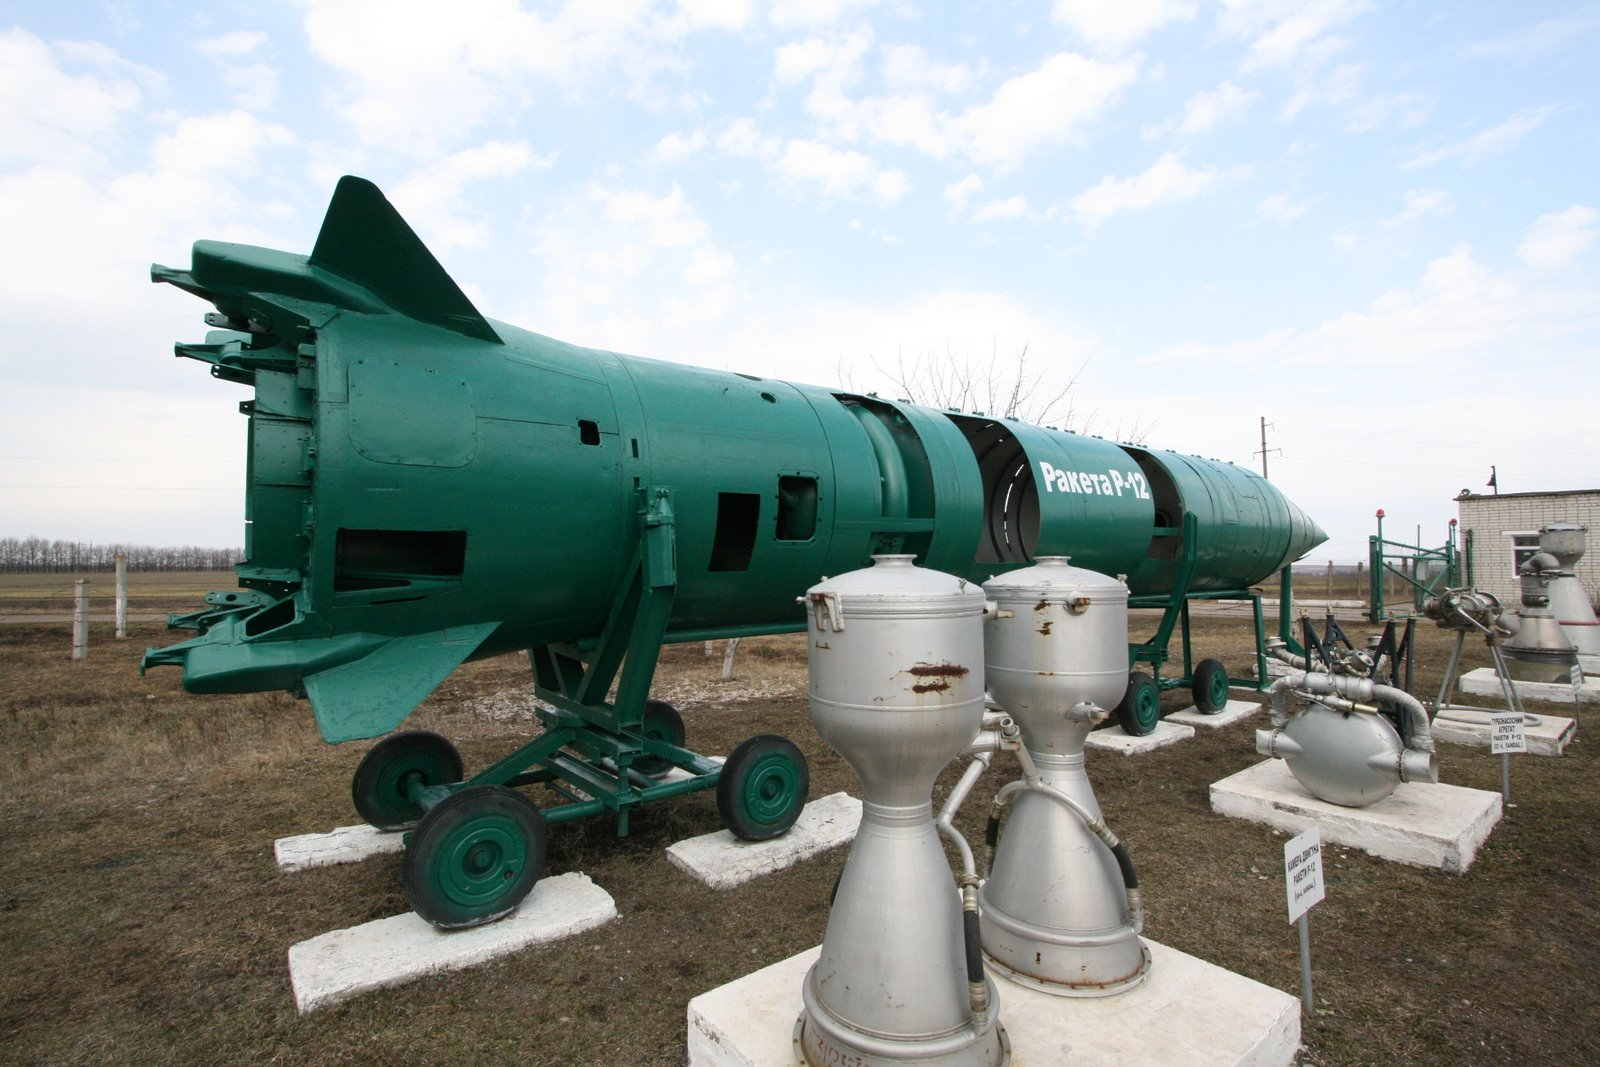 Strategic Missile Forces Museum - missile R-12